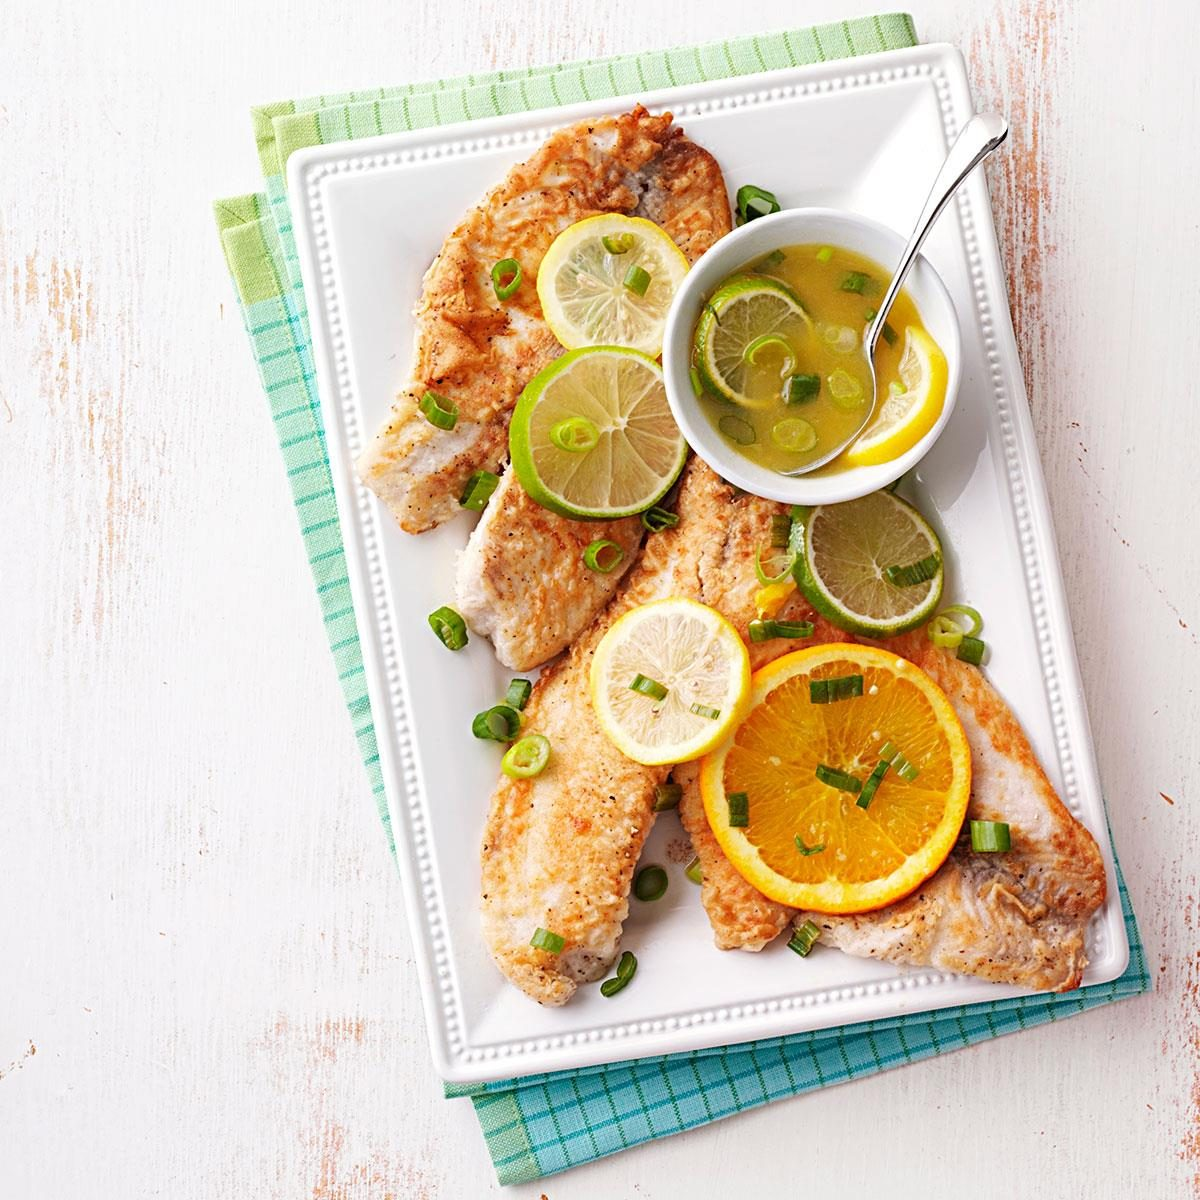 Day 27: Tilapia with Citrus Sauce